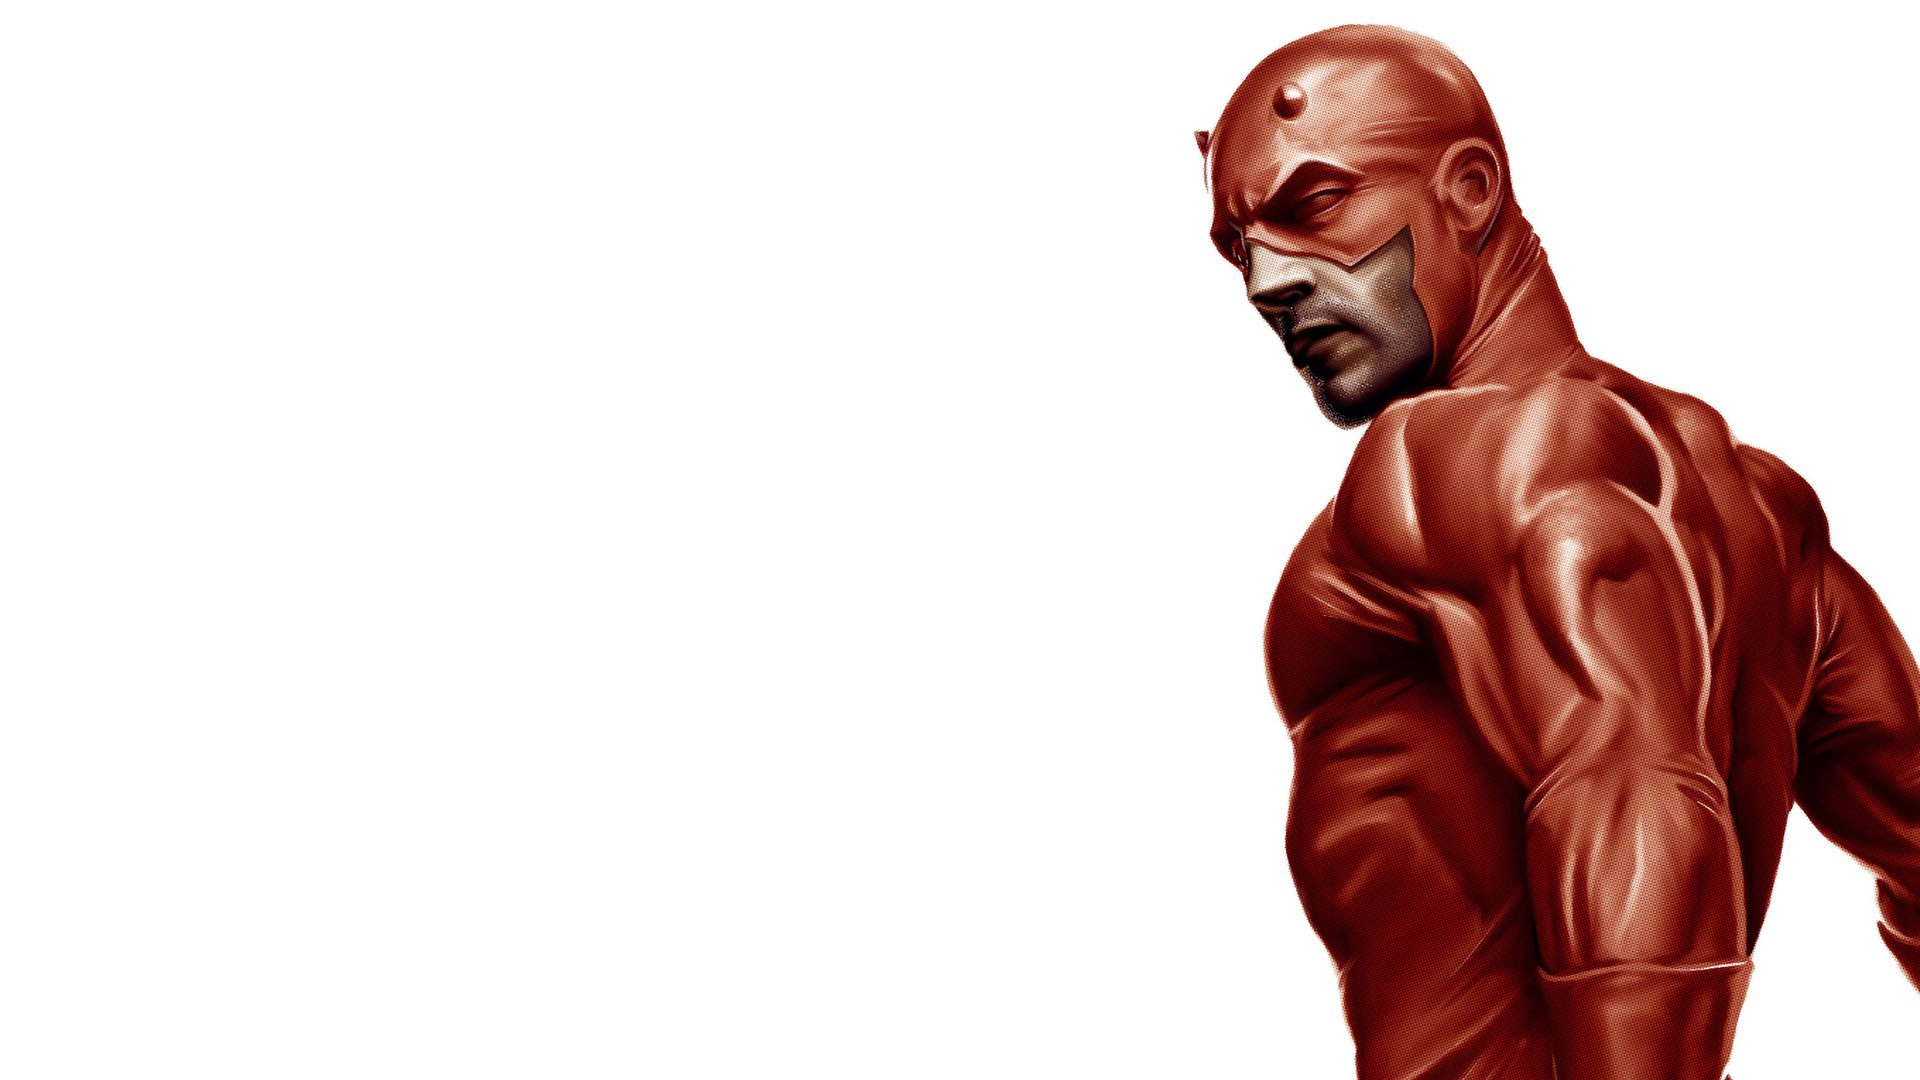 دردویل - مارول کامیکس - daredevil - marvel comics